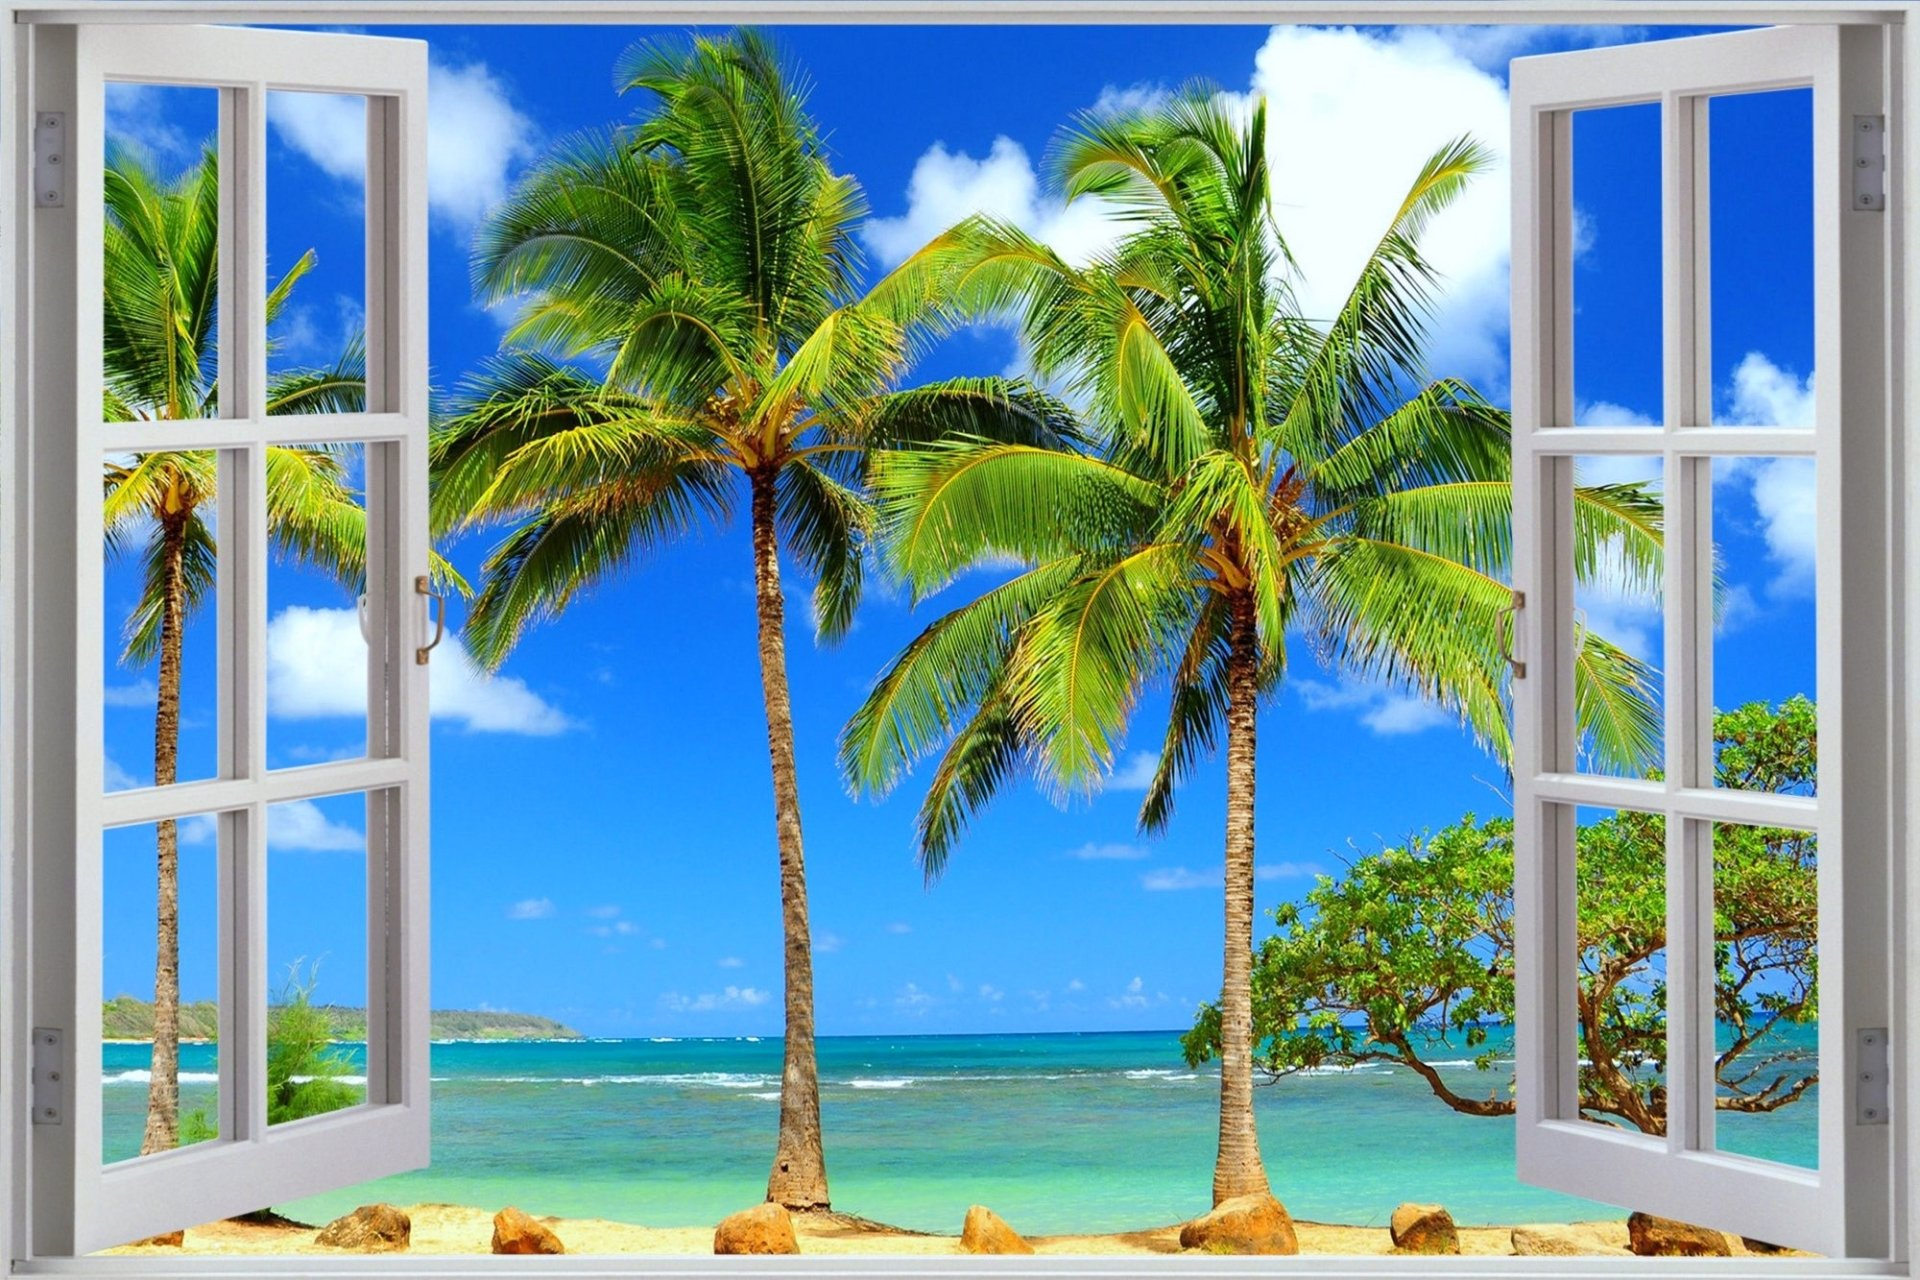 Window To Tropical Beach Full HD Wallpaper And Background Image